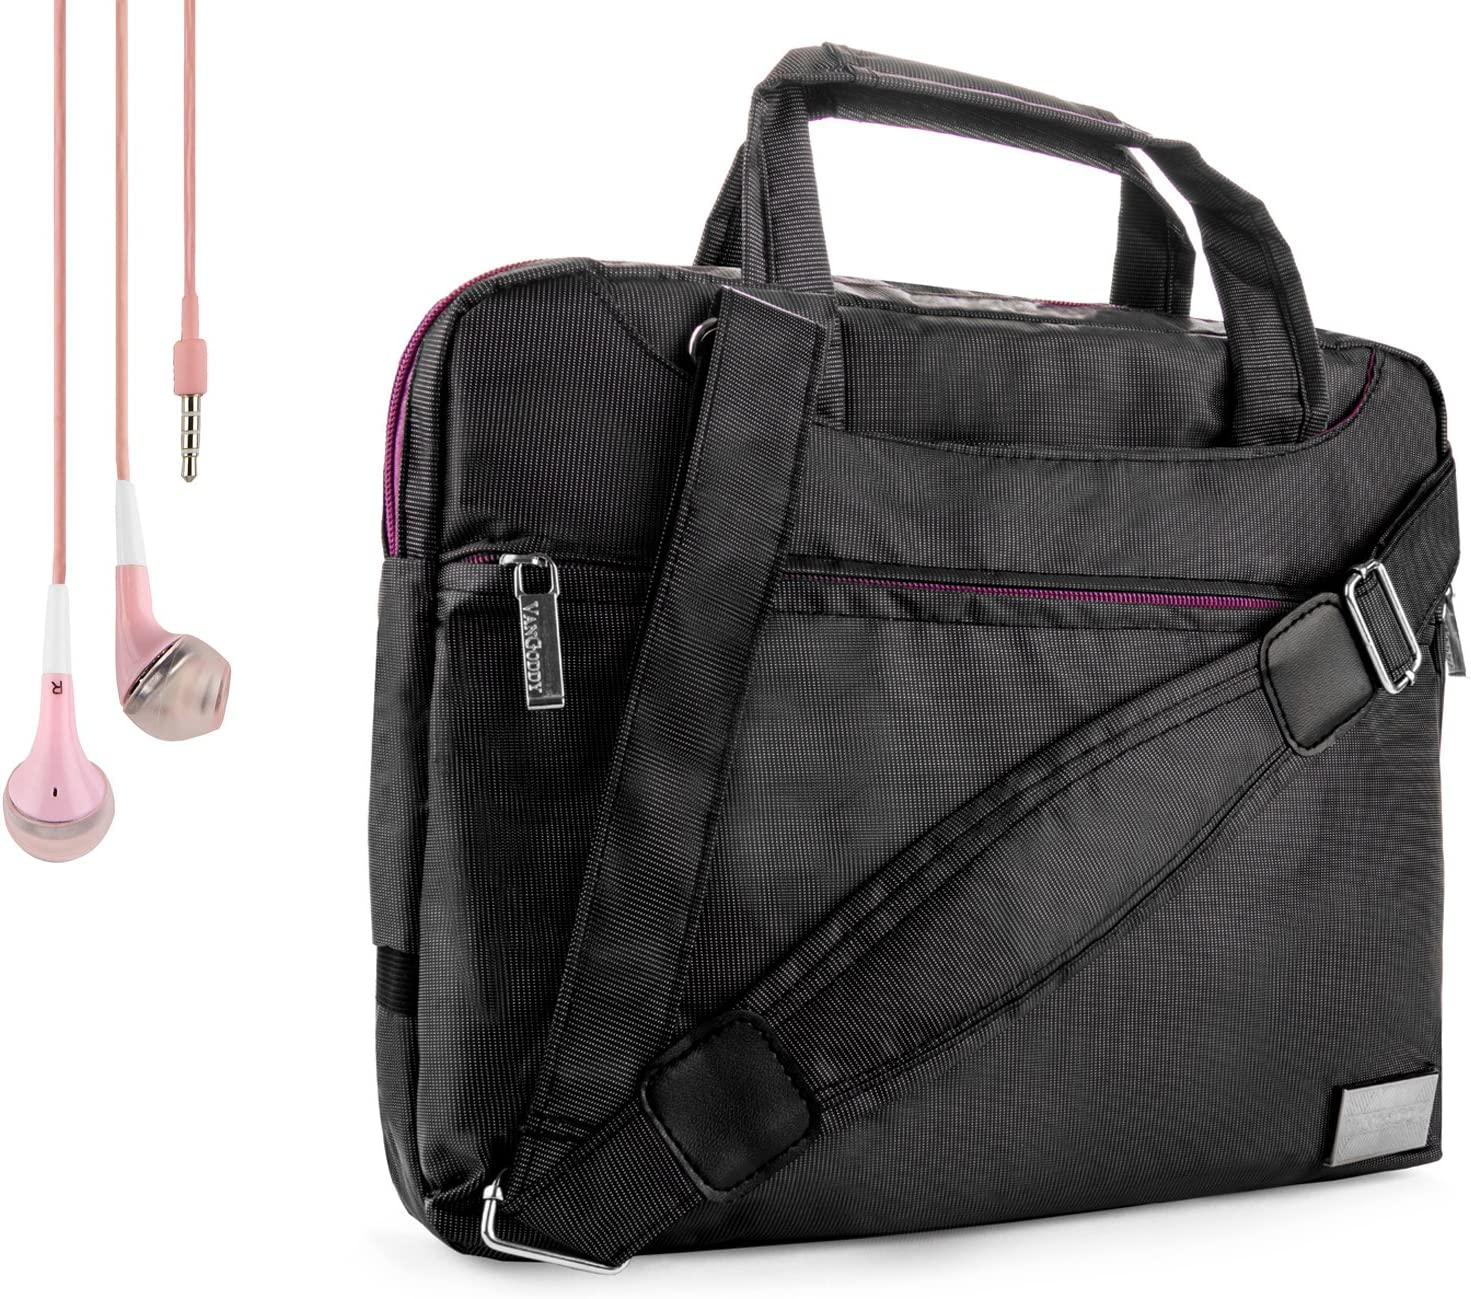 Nine O Premium Nylon Carrying Shoulder Bag Case for Acer Iconia Tab 10 A3 A20, Iconia Tab 8 A1 840 and Handsfree Earphones